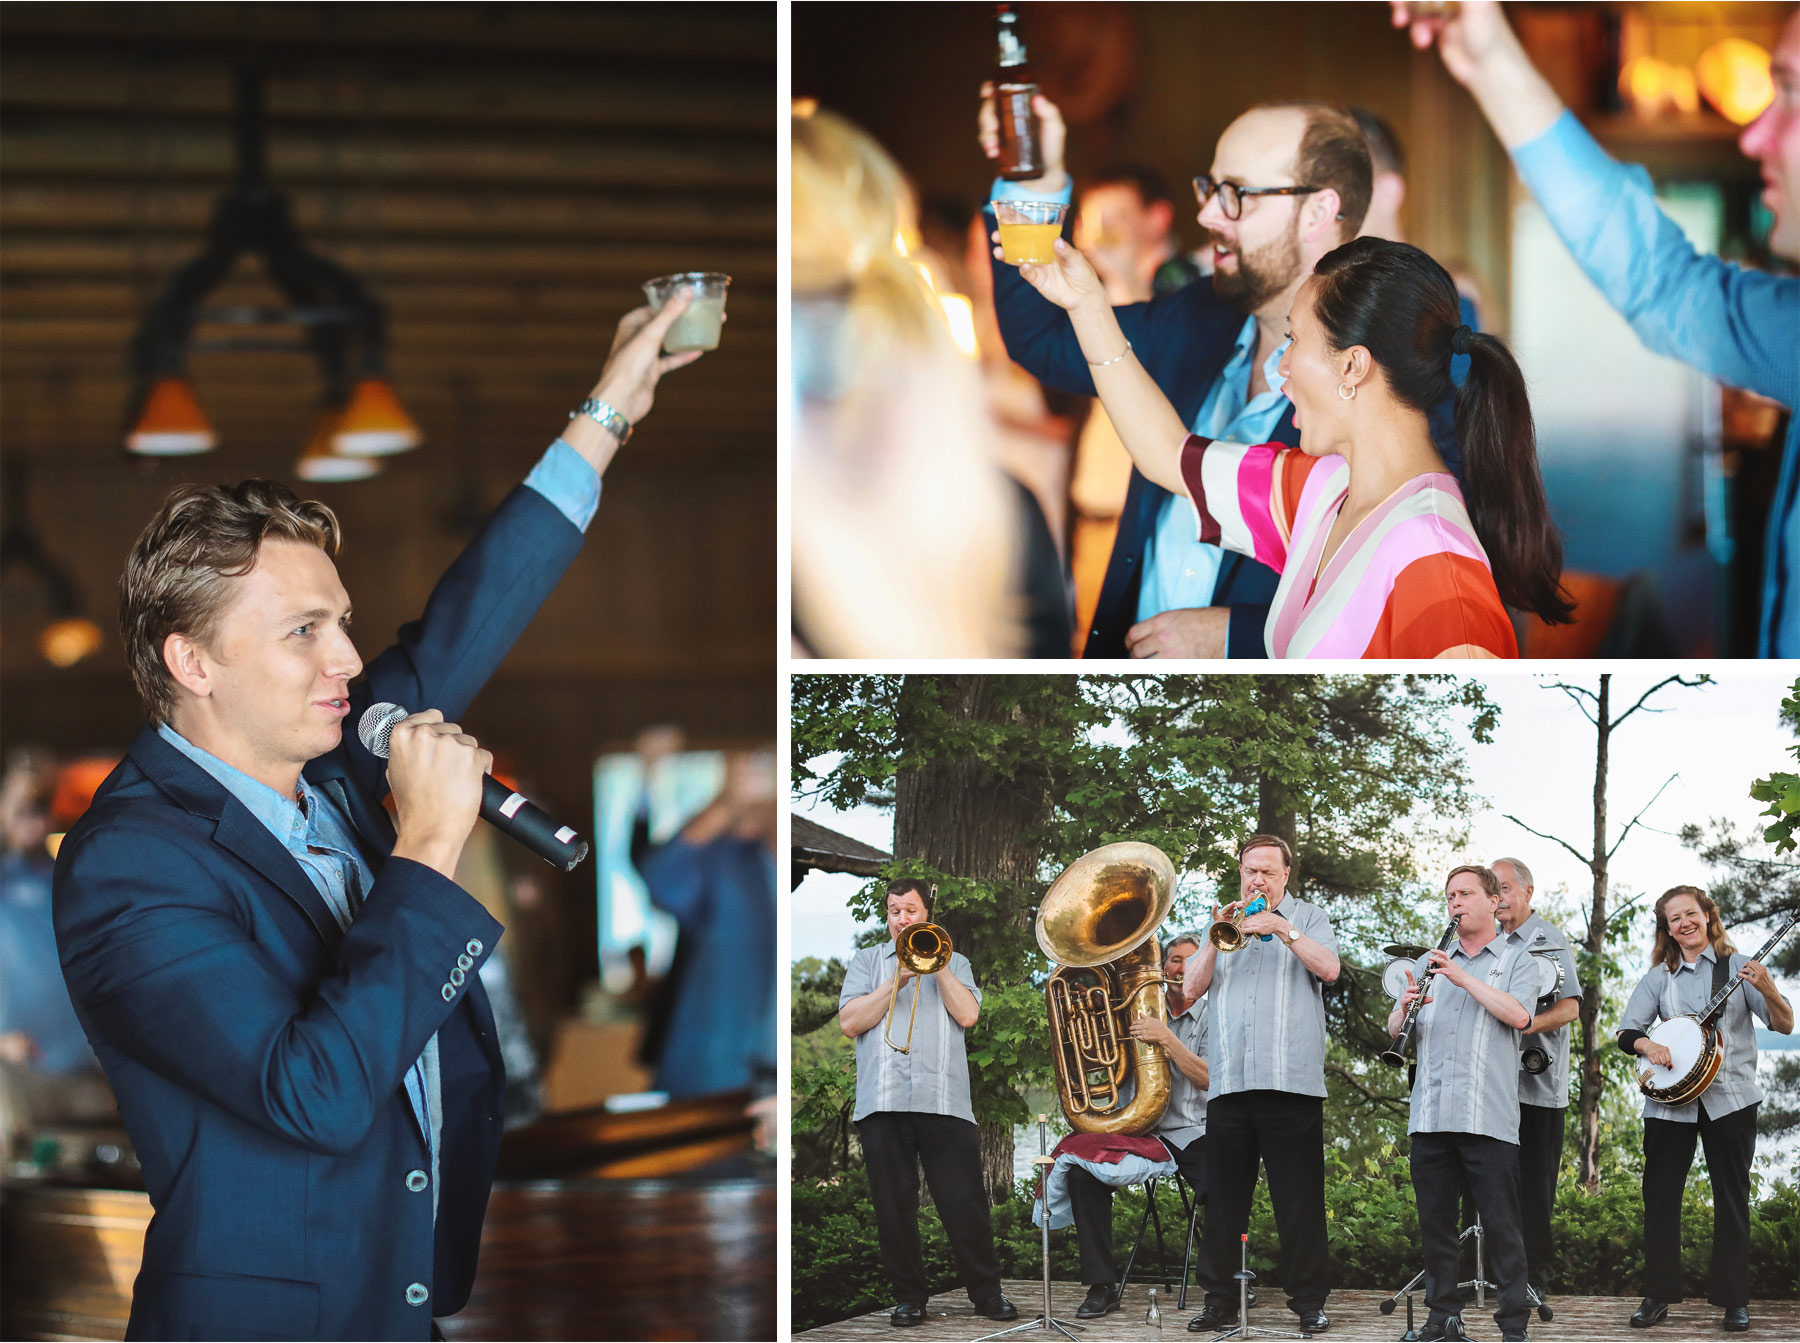 04-Vick-Photography-Wedding-Stouts-Island-Lodge-Wisconsin-Summer-Toast-Band-MiJa-and-Lucius.jpg